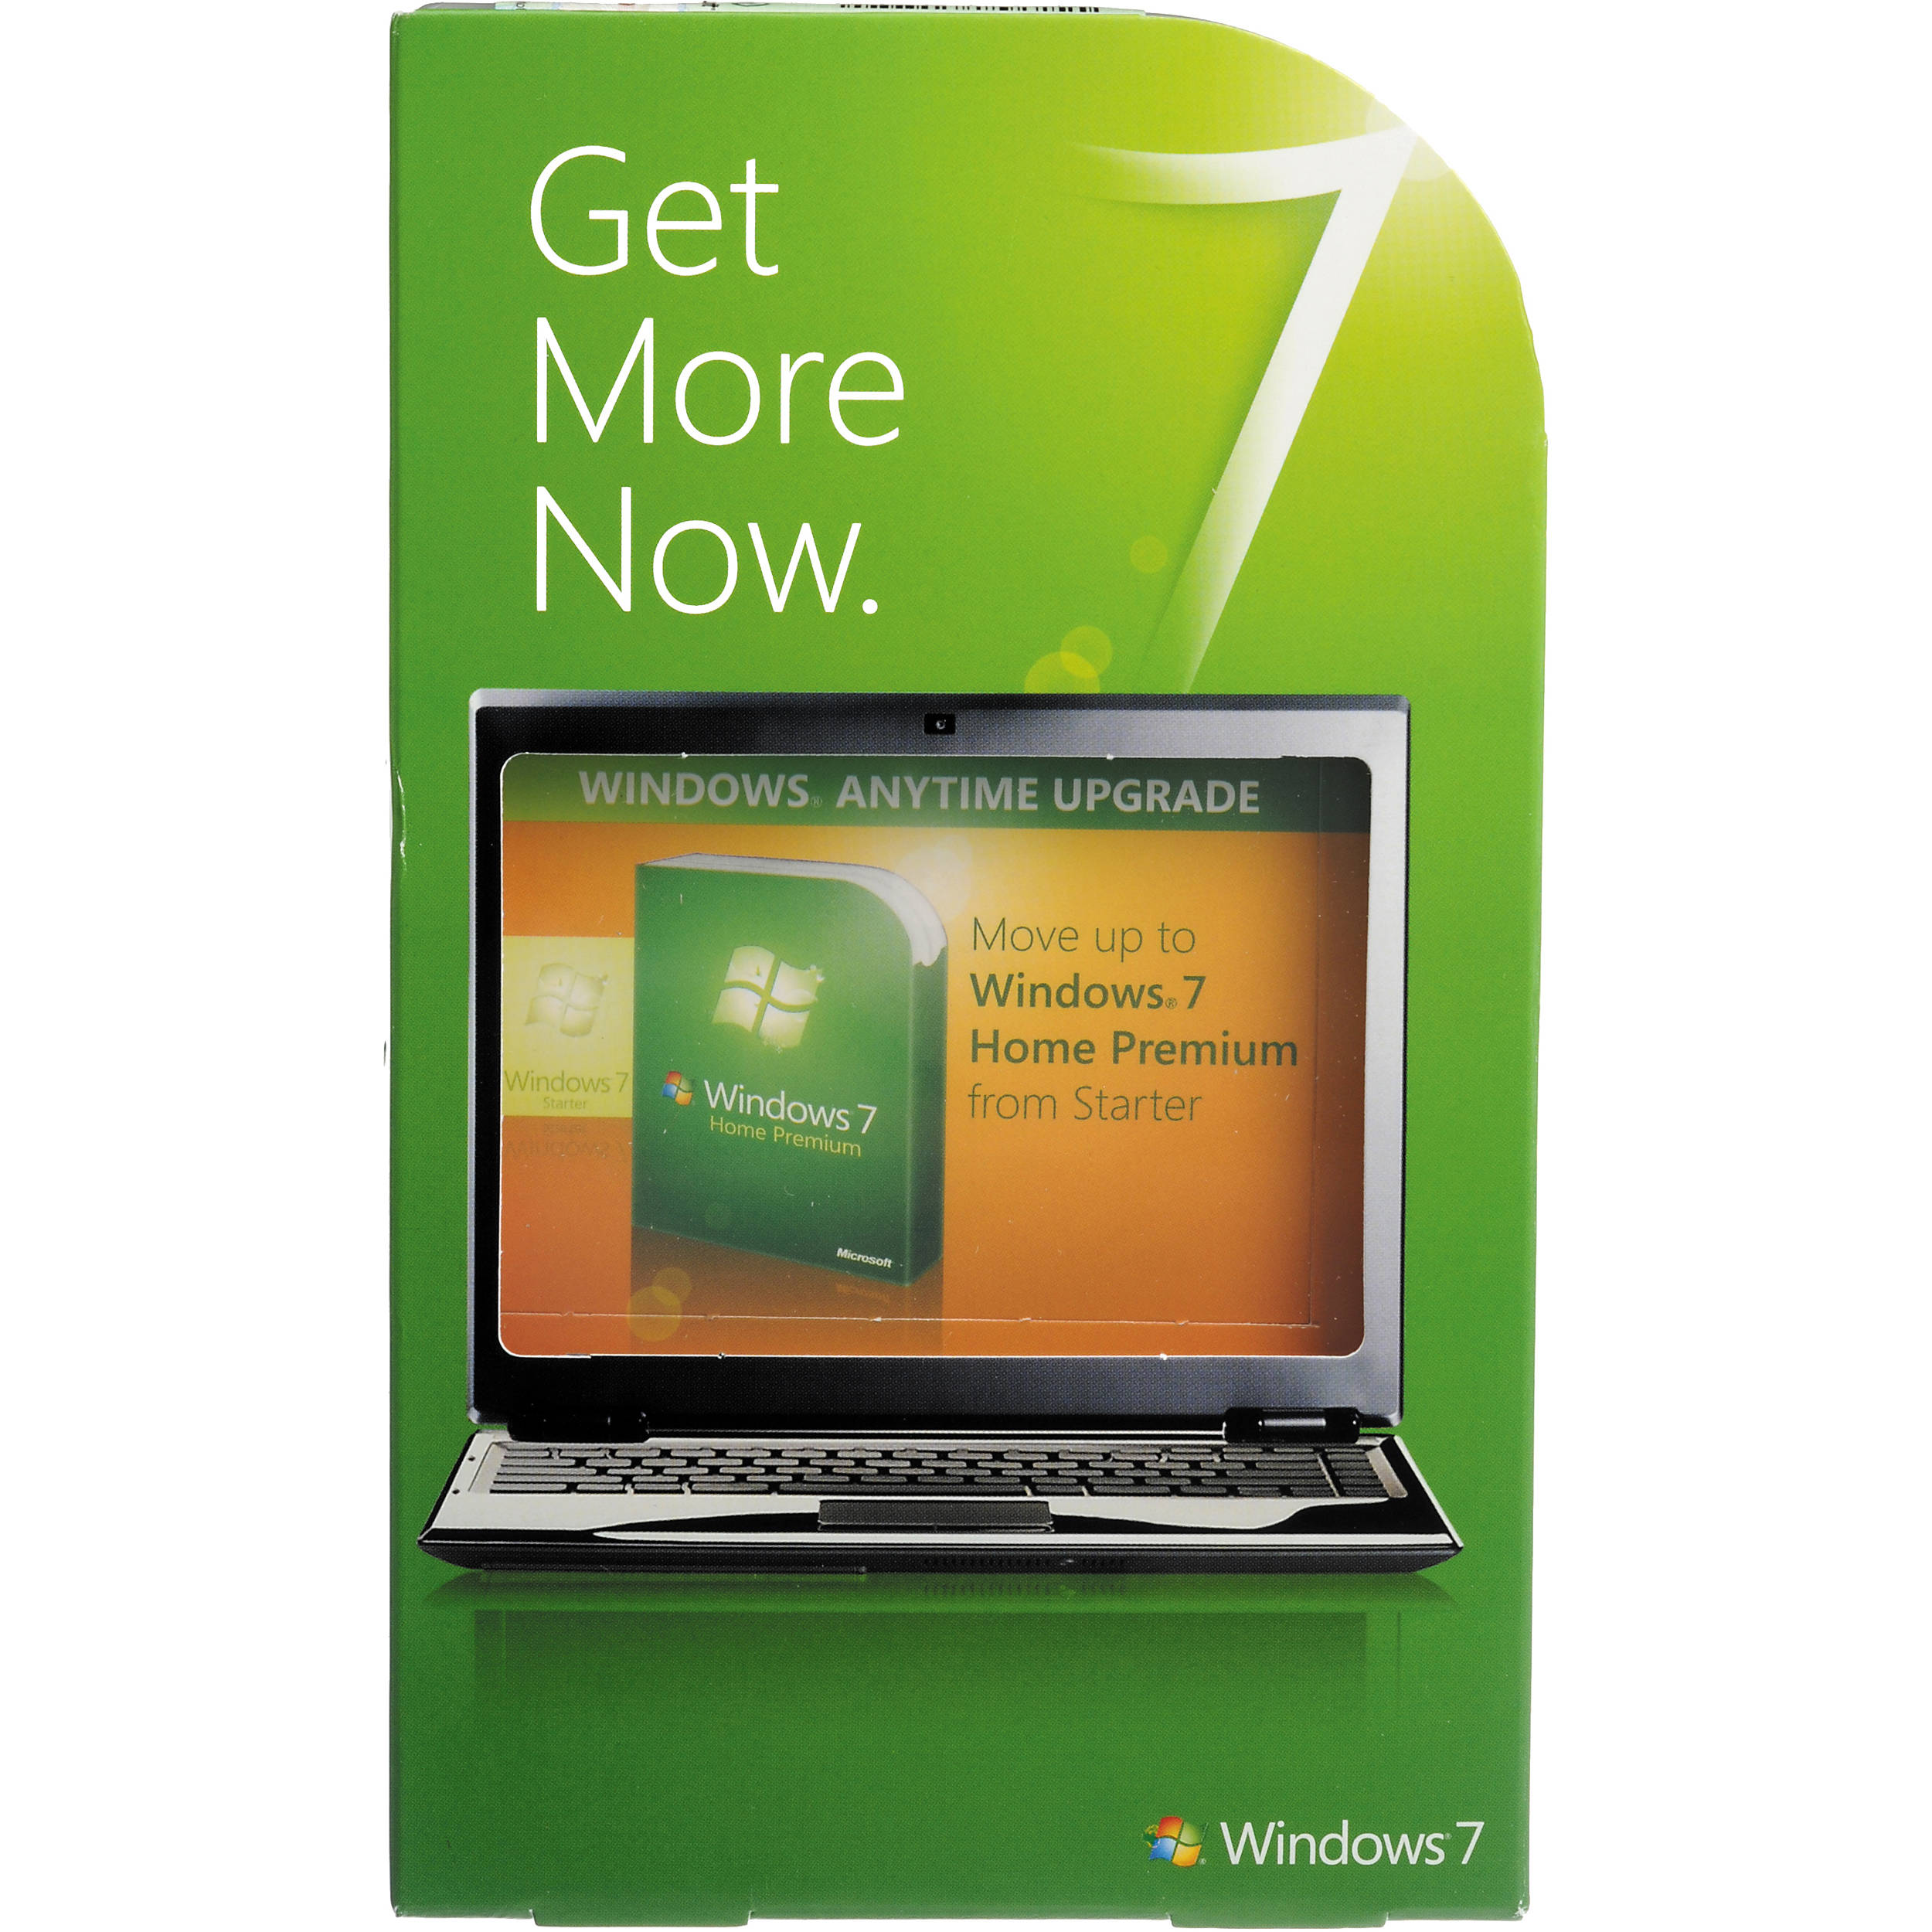 Windows 7 Home Premium - Buy Windows 7 Home Premium Online at Low Price in India - Snapdeal